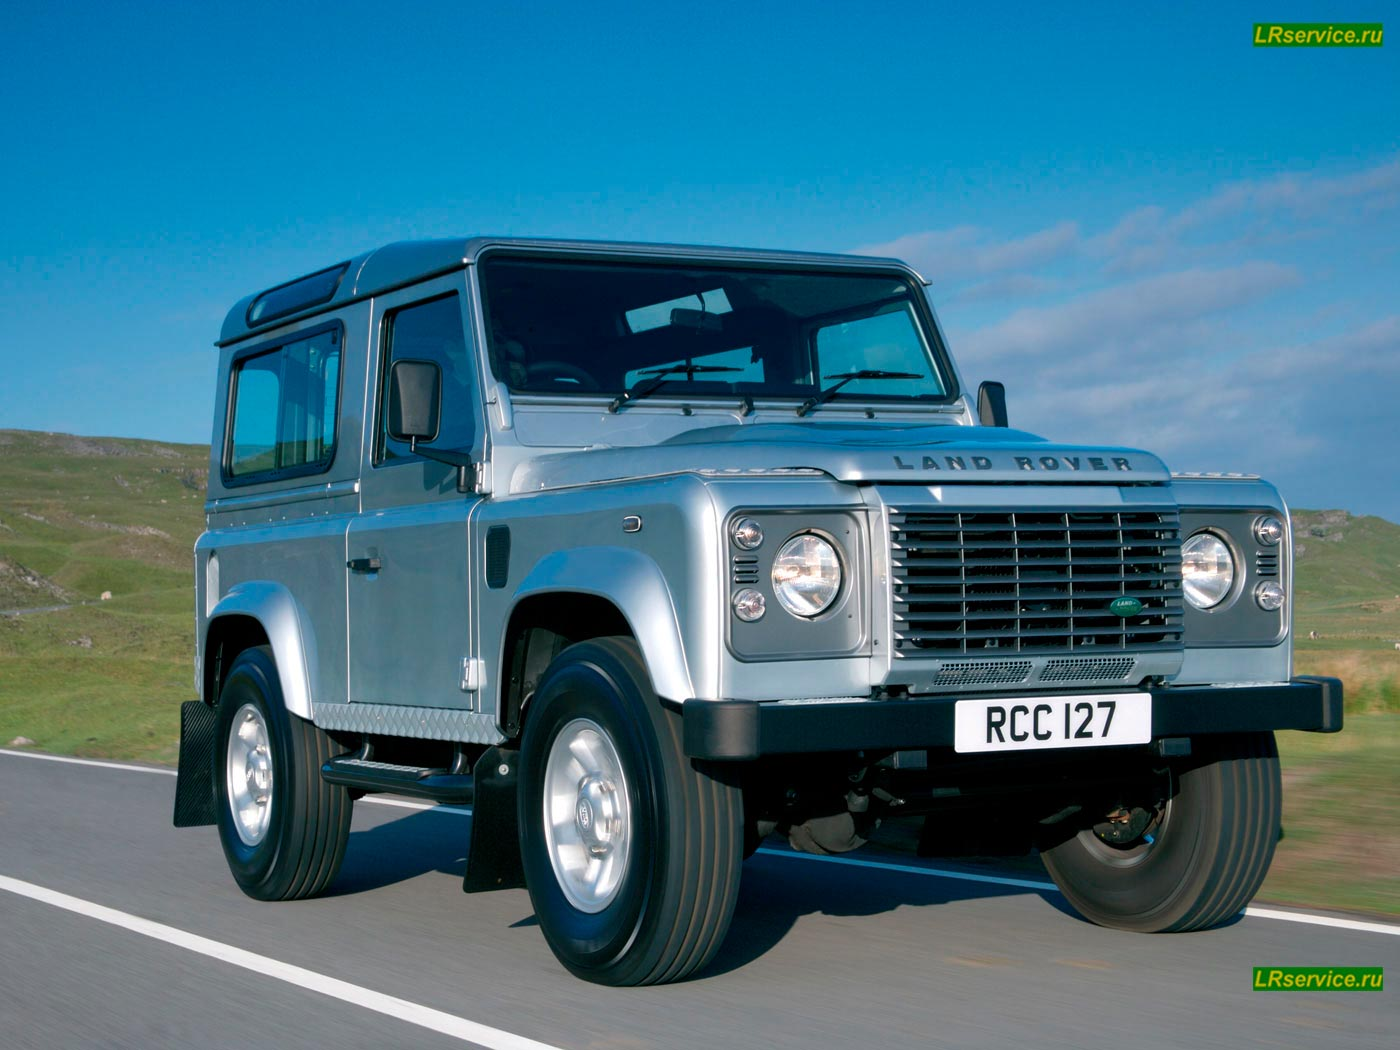 Land Rover Defender photo 42586